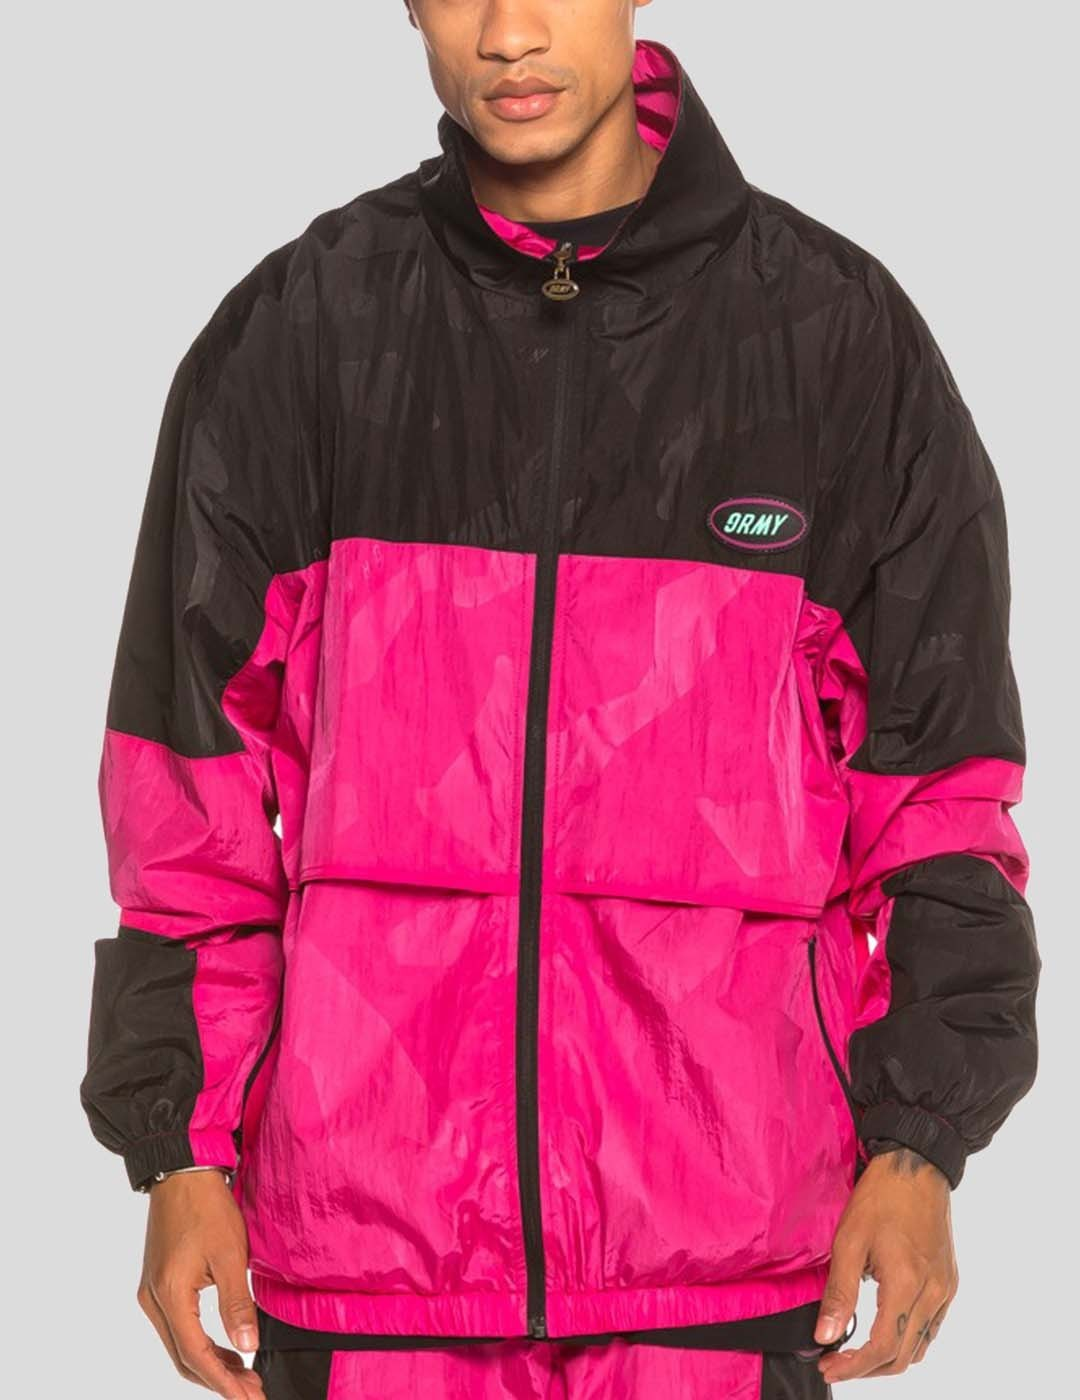 CHAQUETA GRIMEY MYSTERIOUS VIBES TRACK JACKET PINK